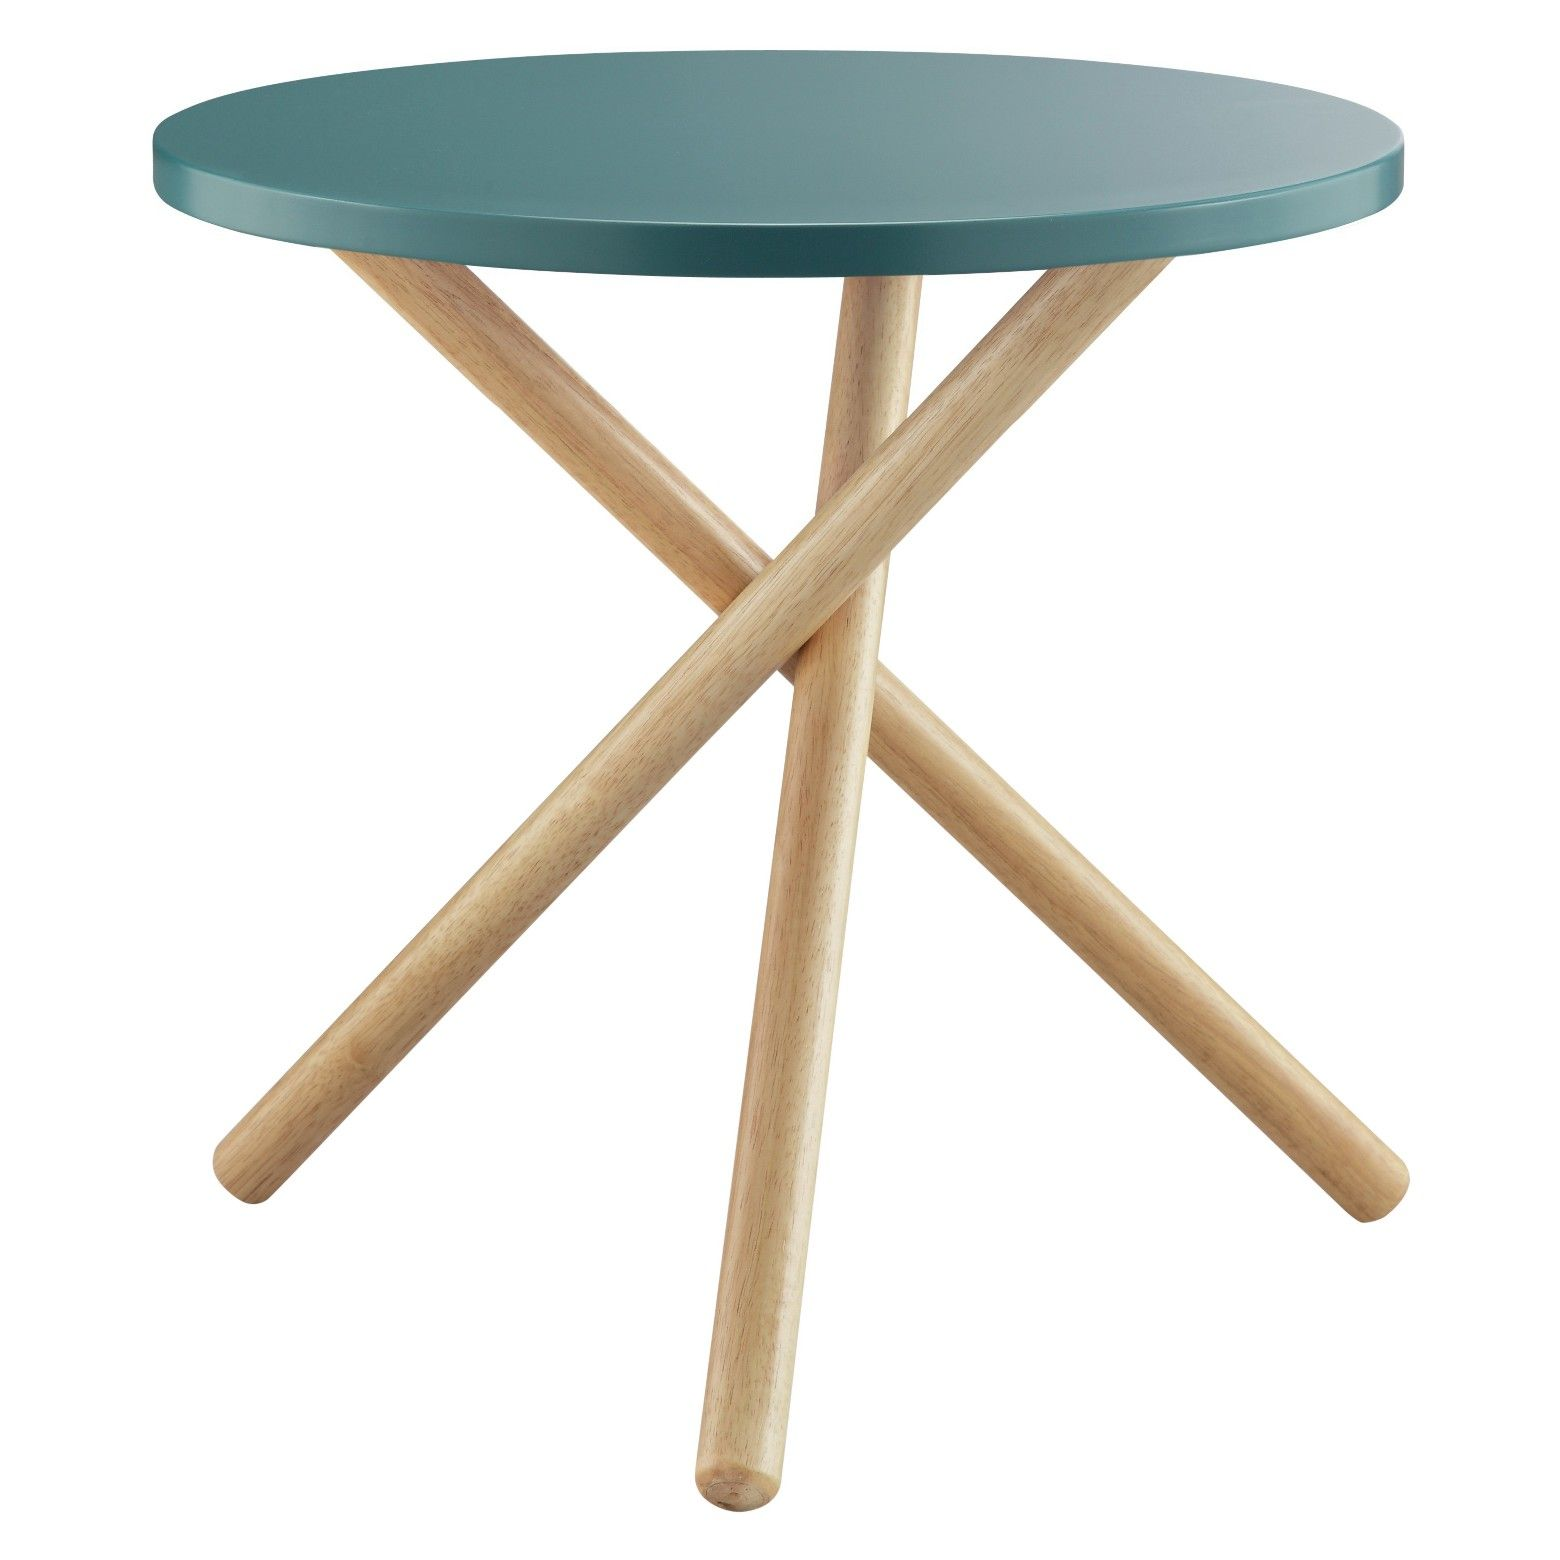 end table teal blue accent tables and target mosaic chairs alton night wine chiller bucket outdoor sofa coffee hampton bay wicker patio set emerald green barbecue cool nightstand